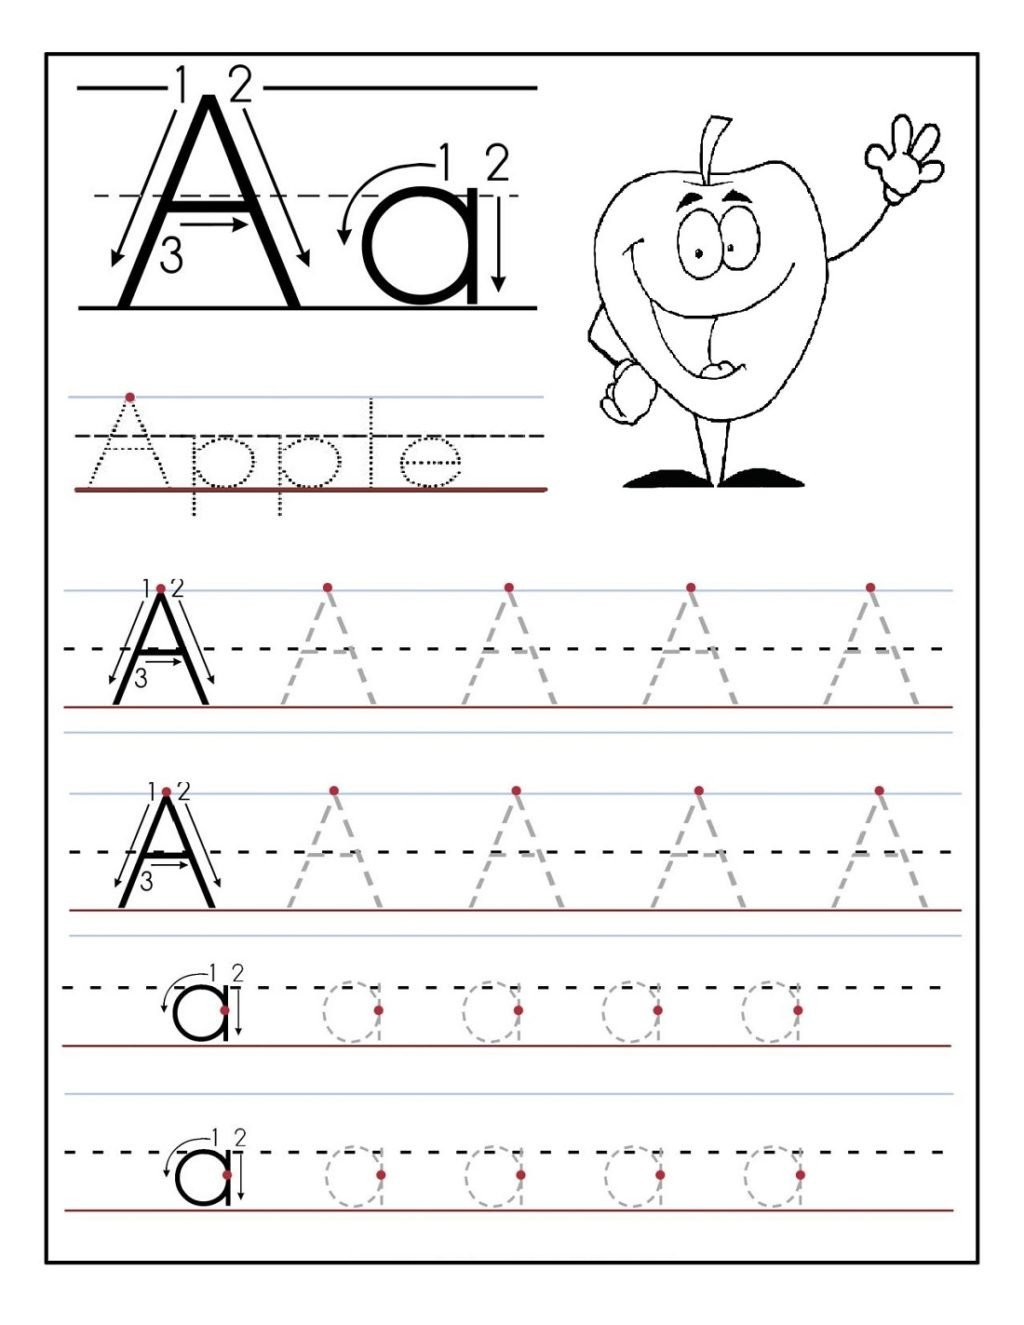 kindergarten alphabet tracing worksheets fun loving printable outstanding for picture ideas pdf 1024x1325